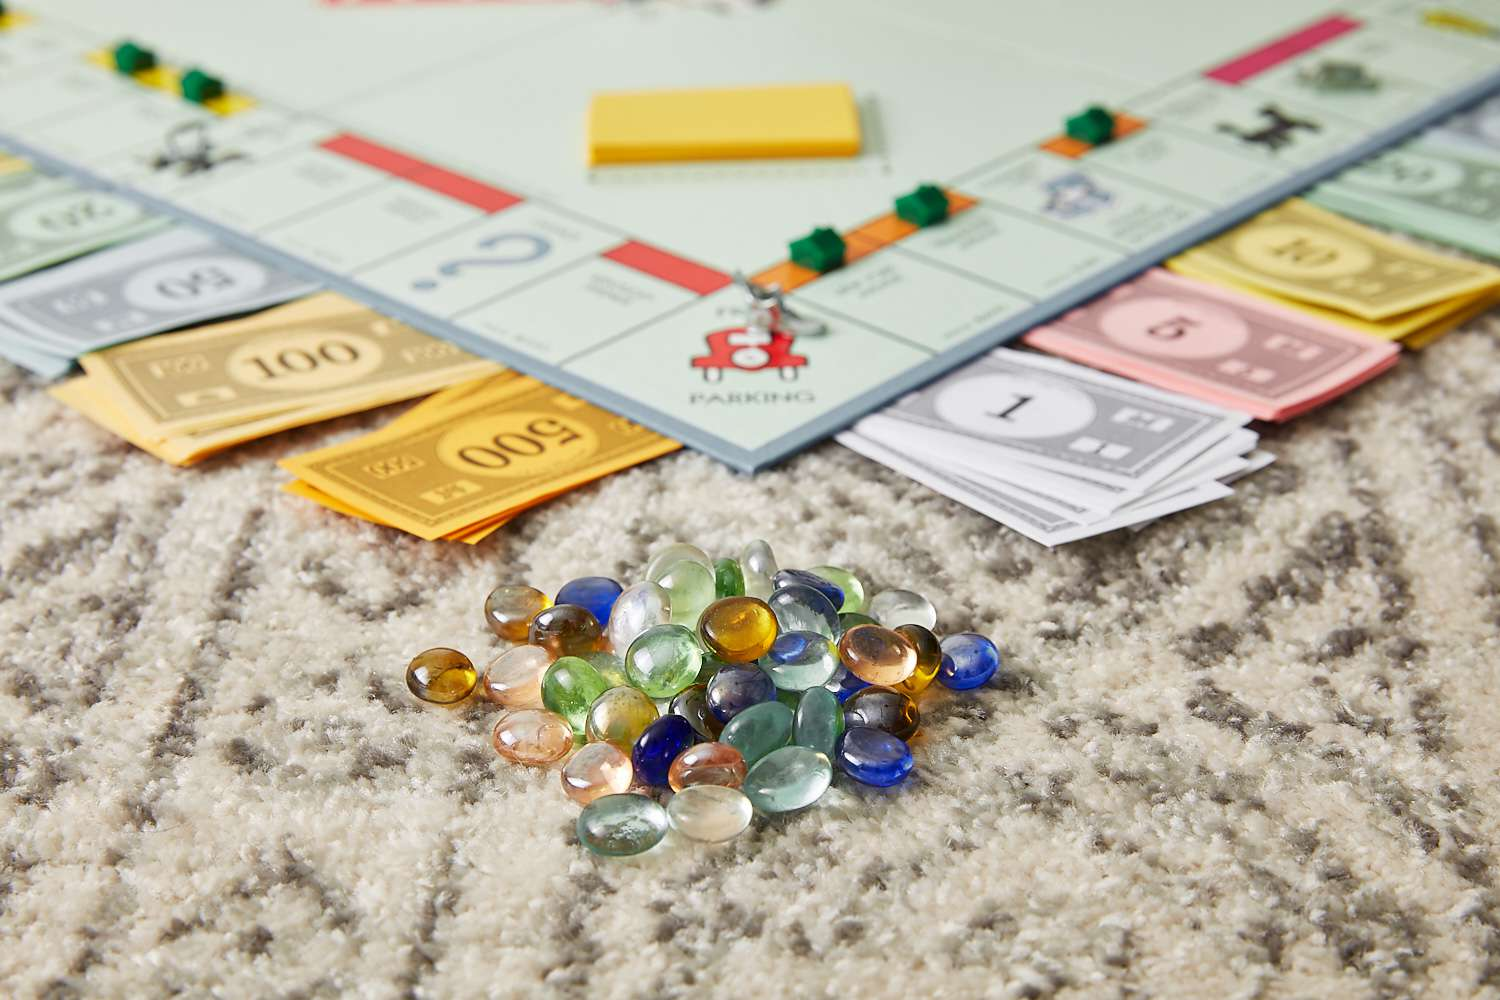 using marbles as currency in monopoly